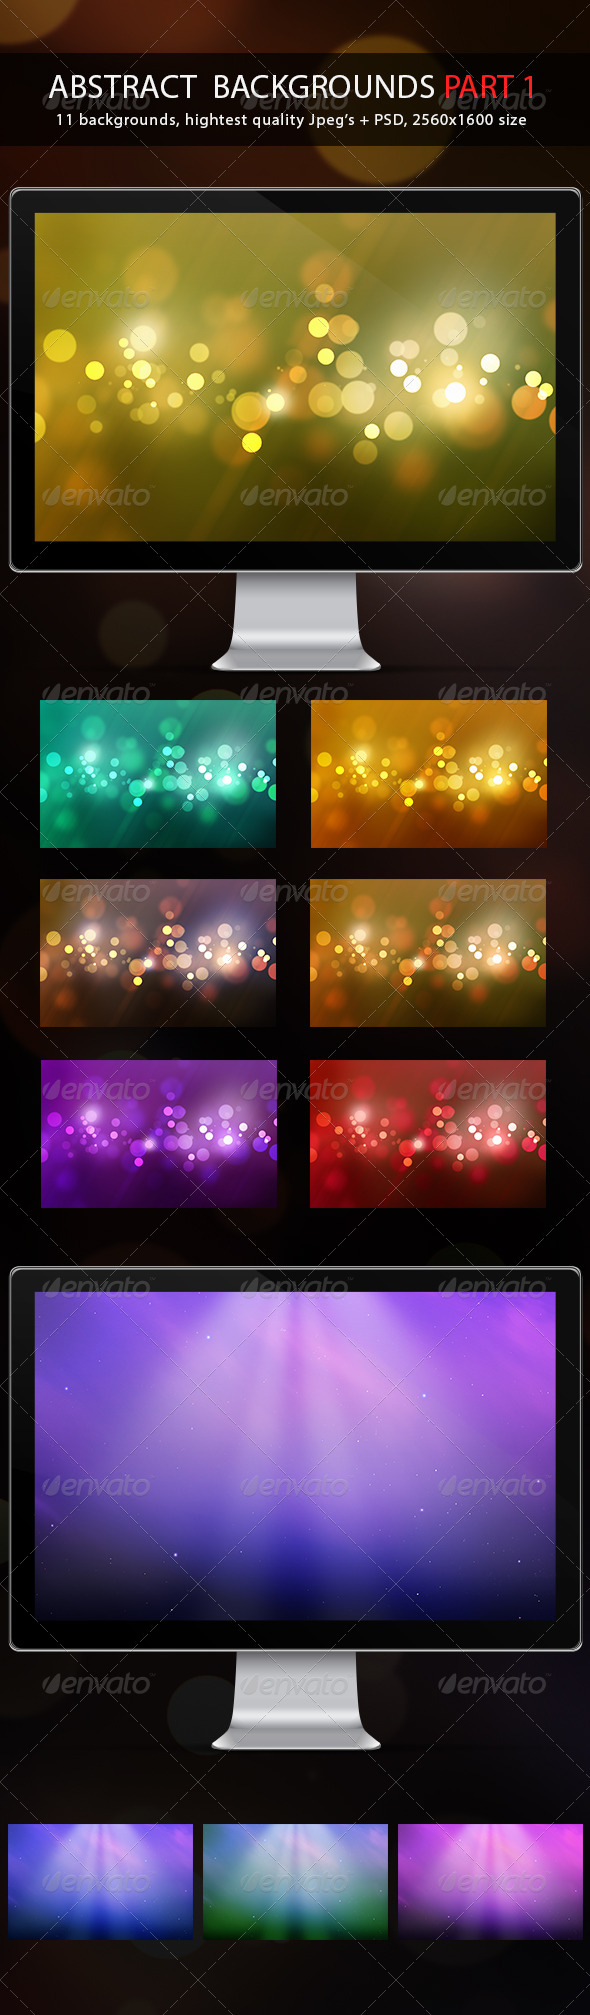 GraphicRiver Abstract Backgrounds Part 1 5082606